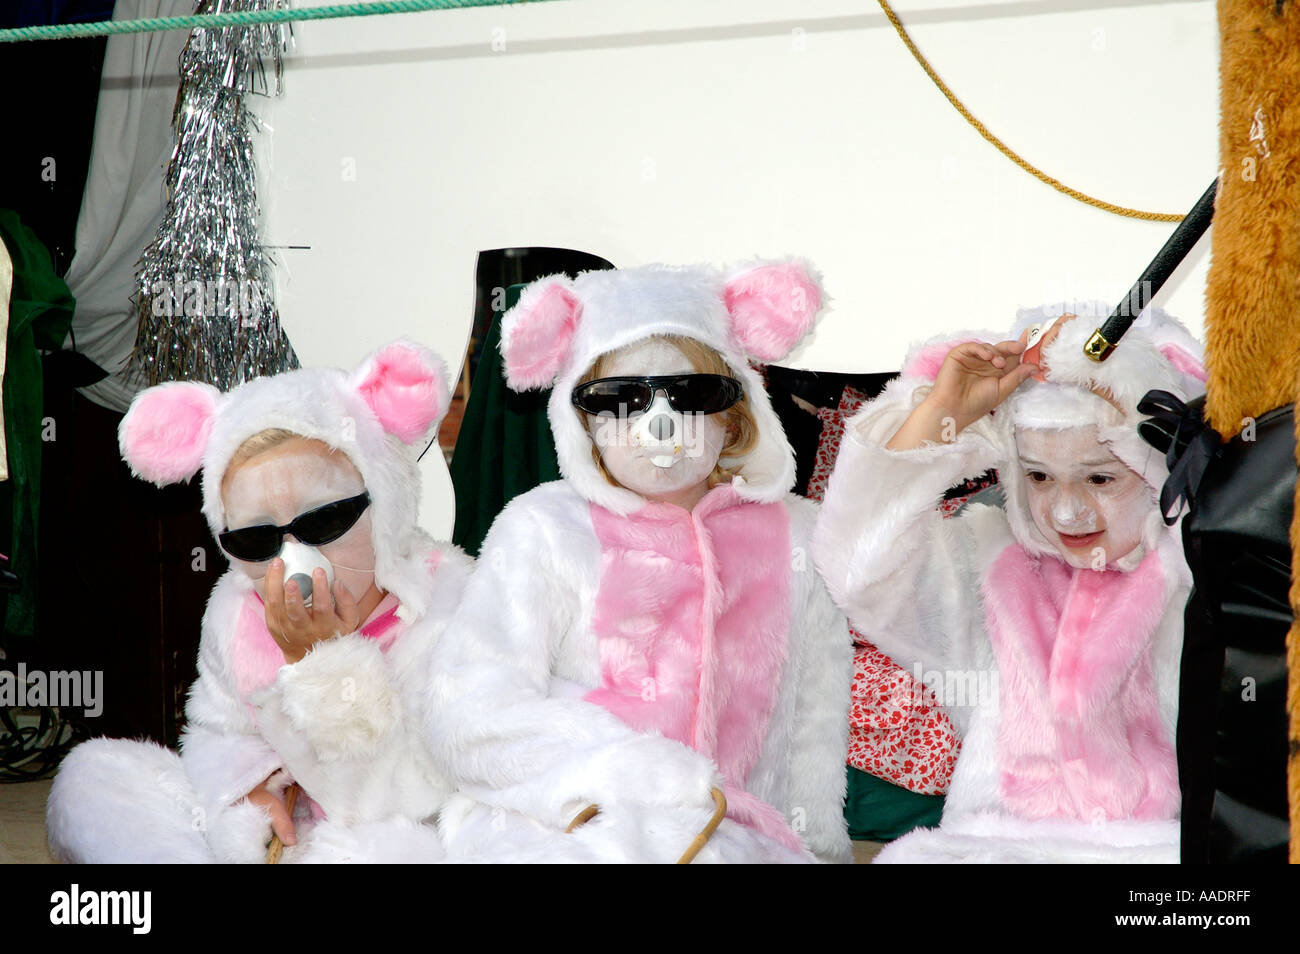 Three Blind Mice High Resolution Stock Photography And Images Alamy